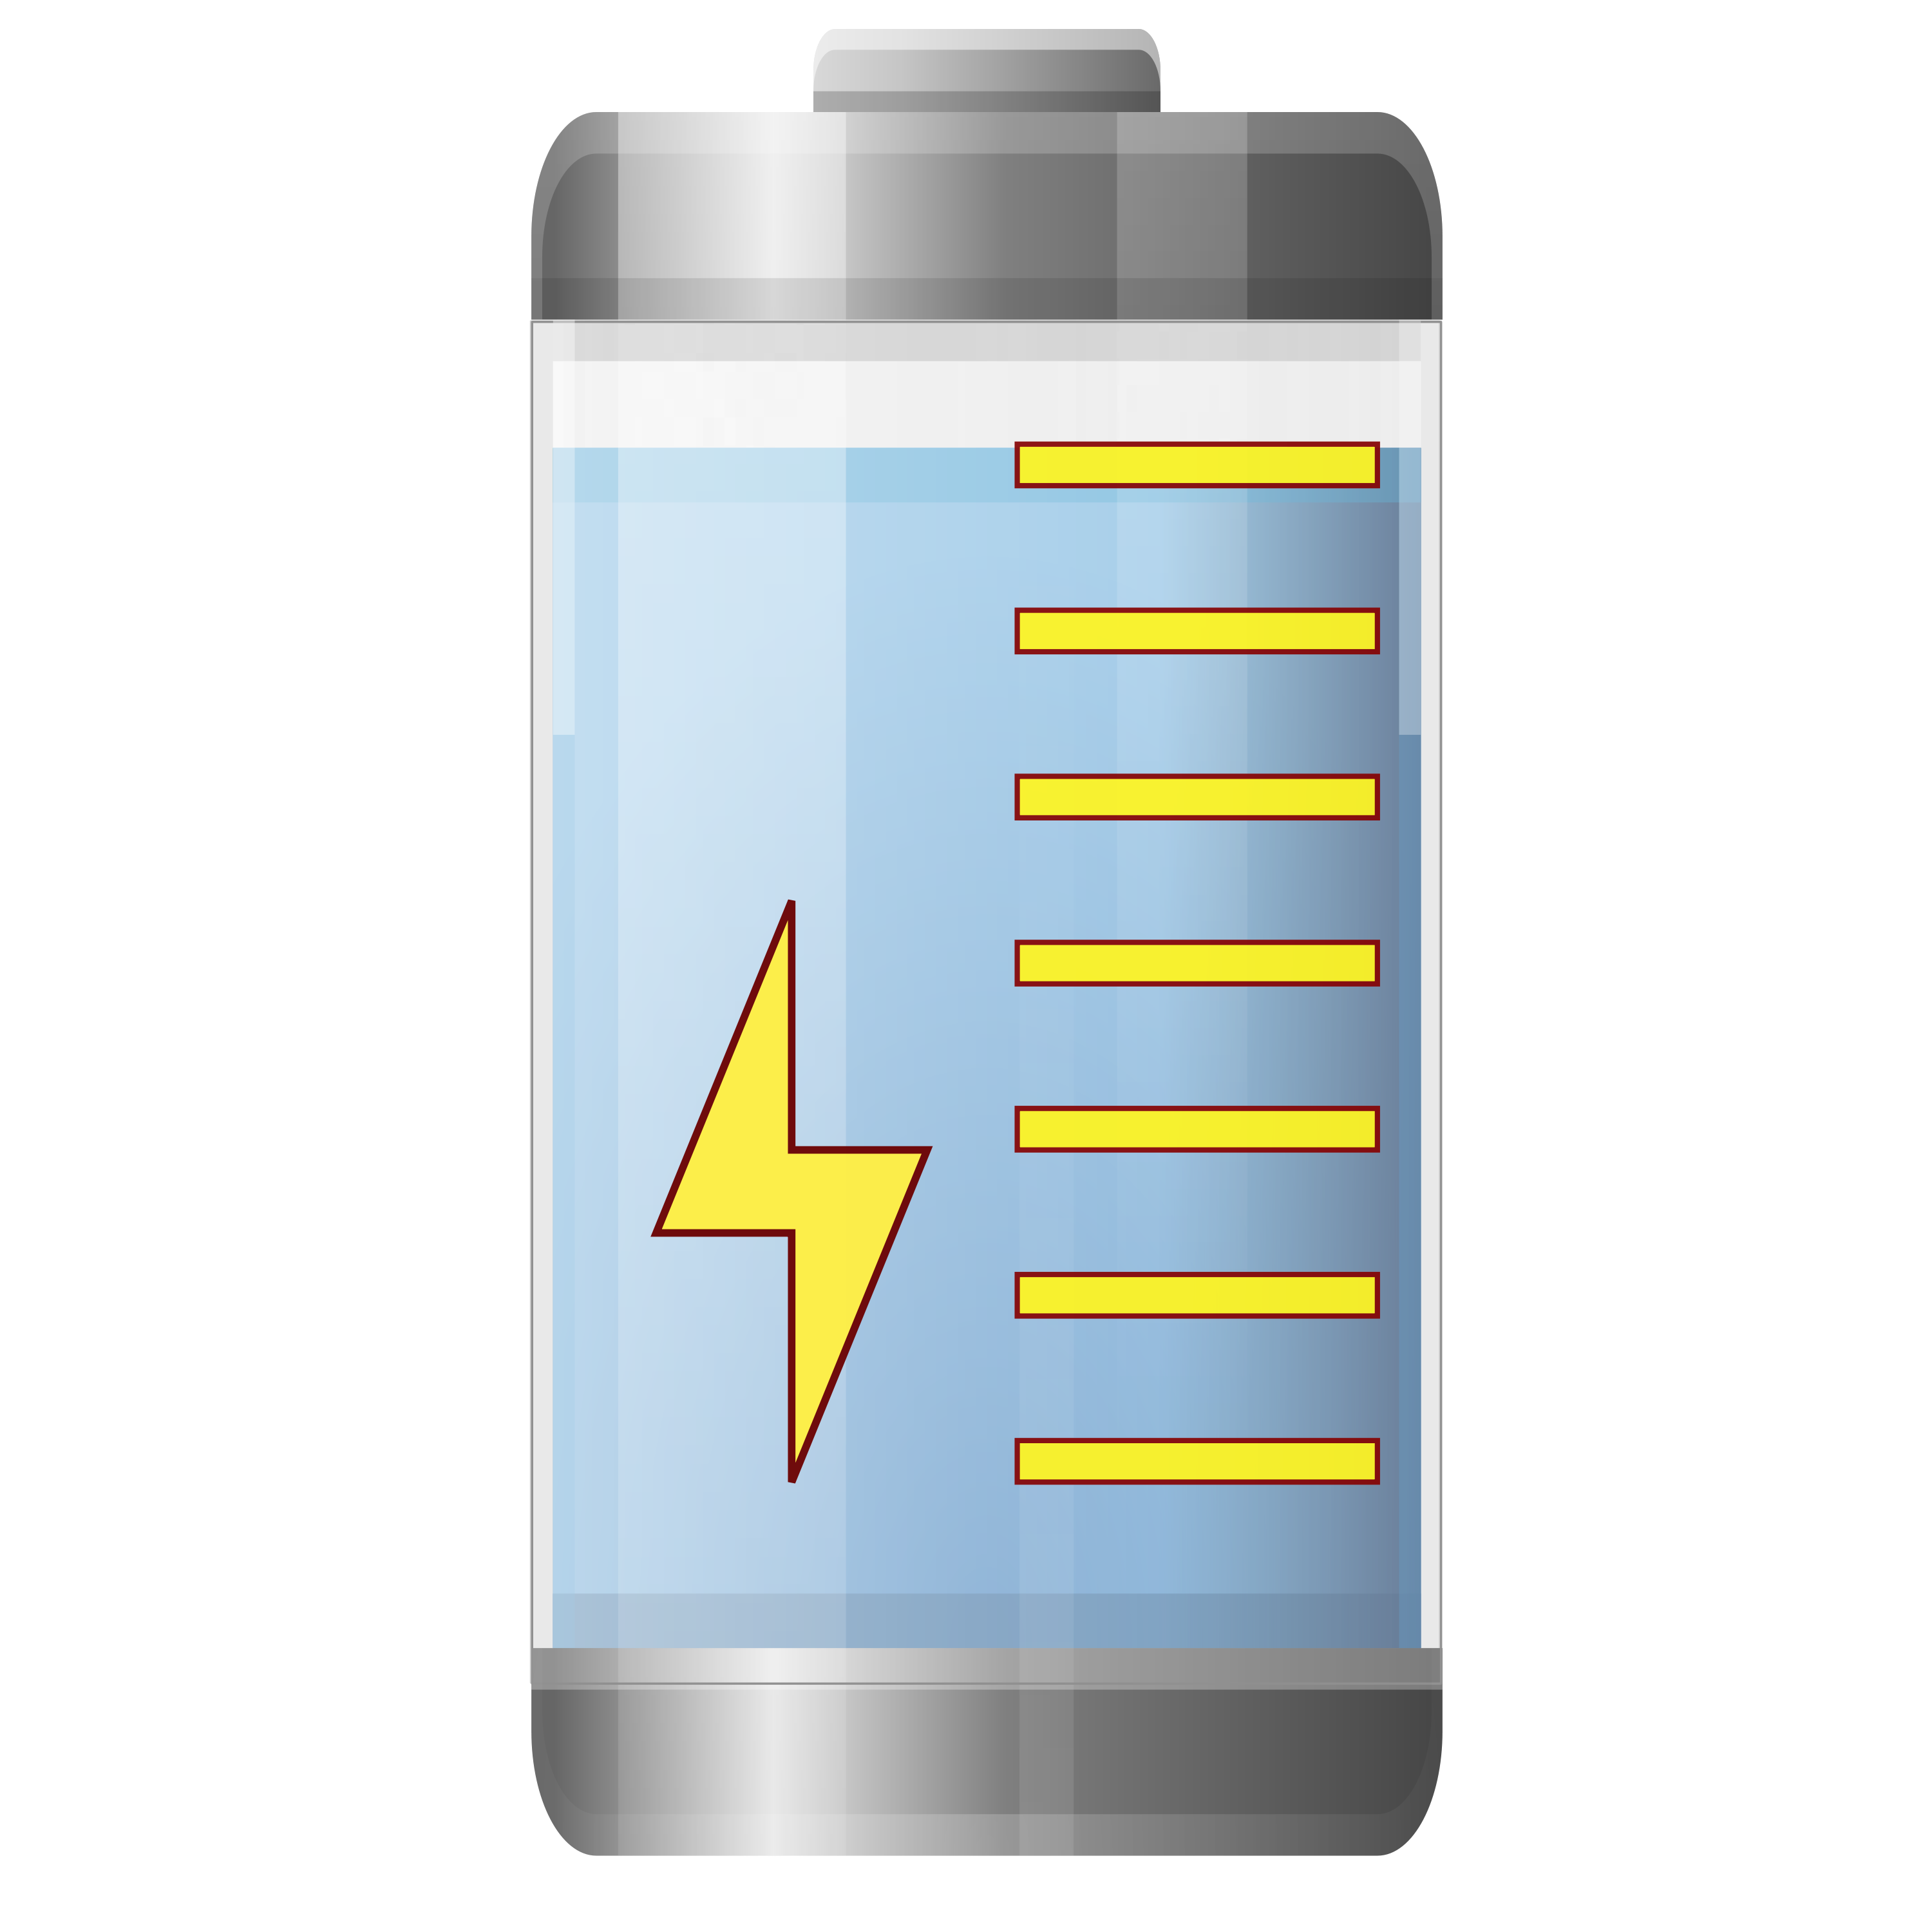 picture black and white Battery clipart dry cell. Replace batteries clip art.